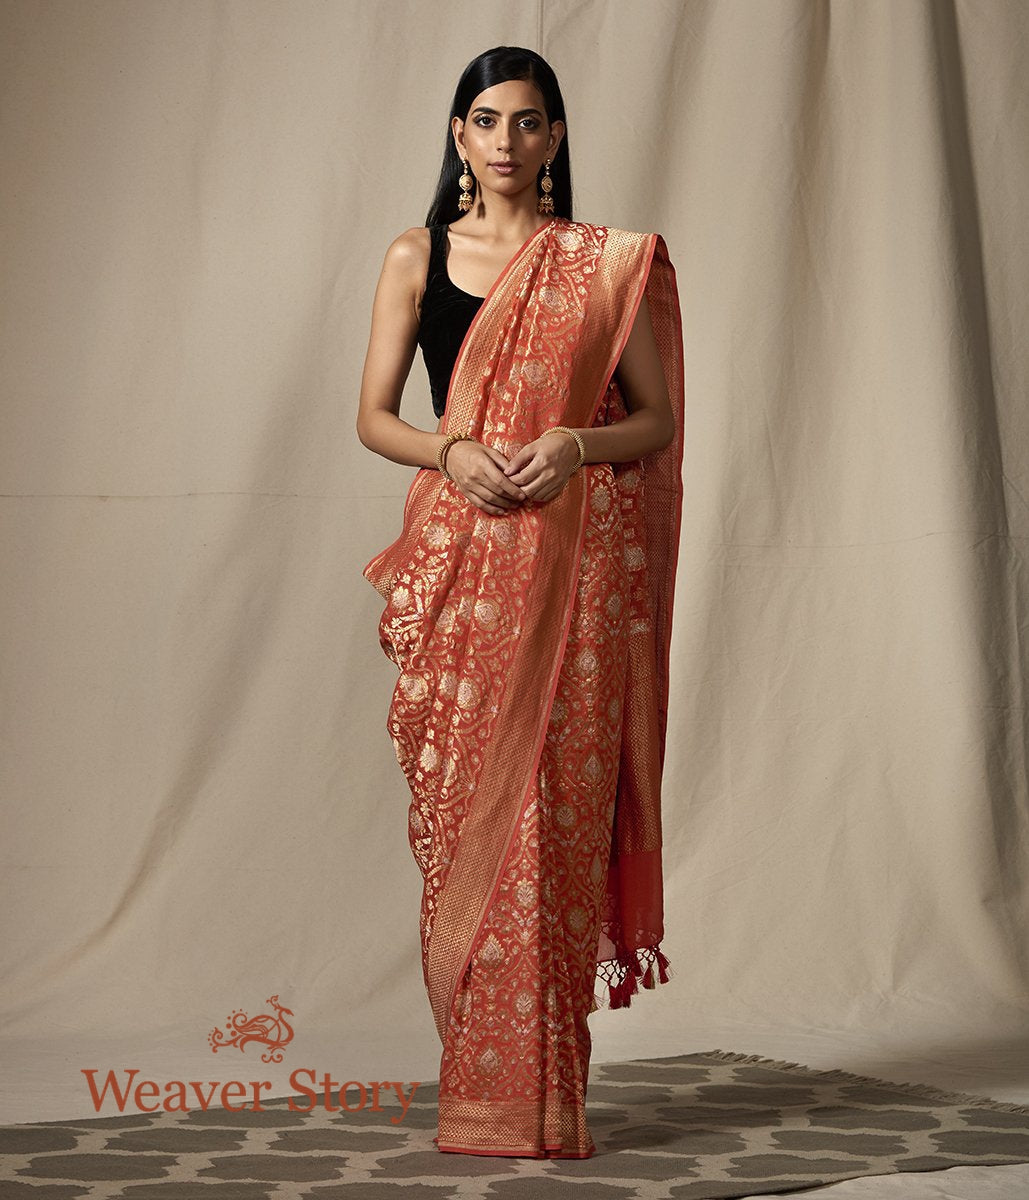 Handwoven Banarasi Georgette Saree in Coral Red with Gold and Silver Zari